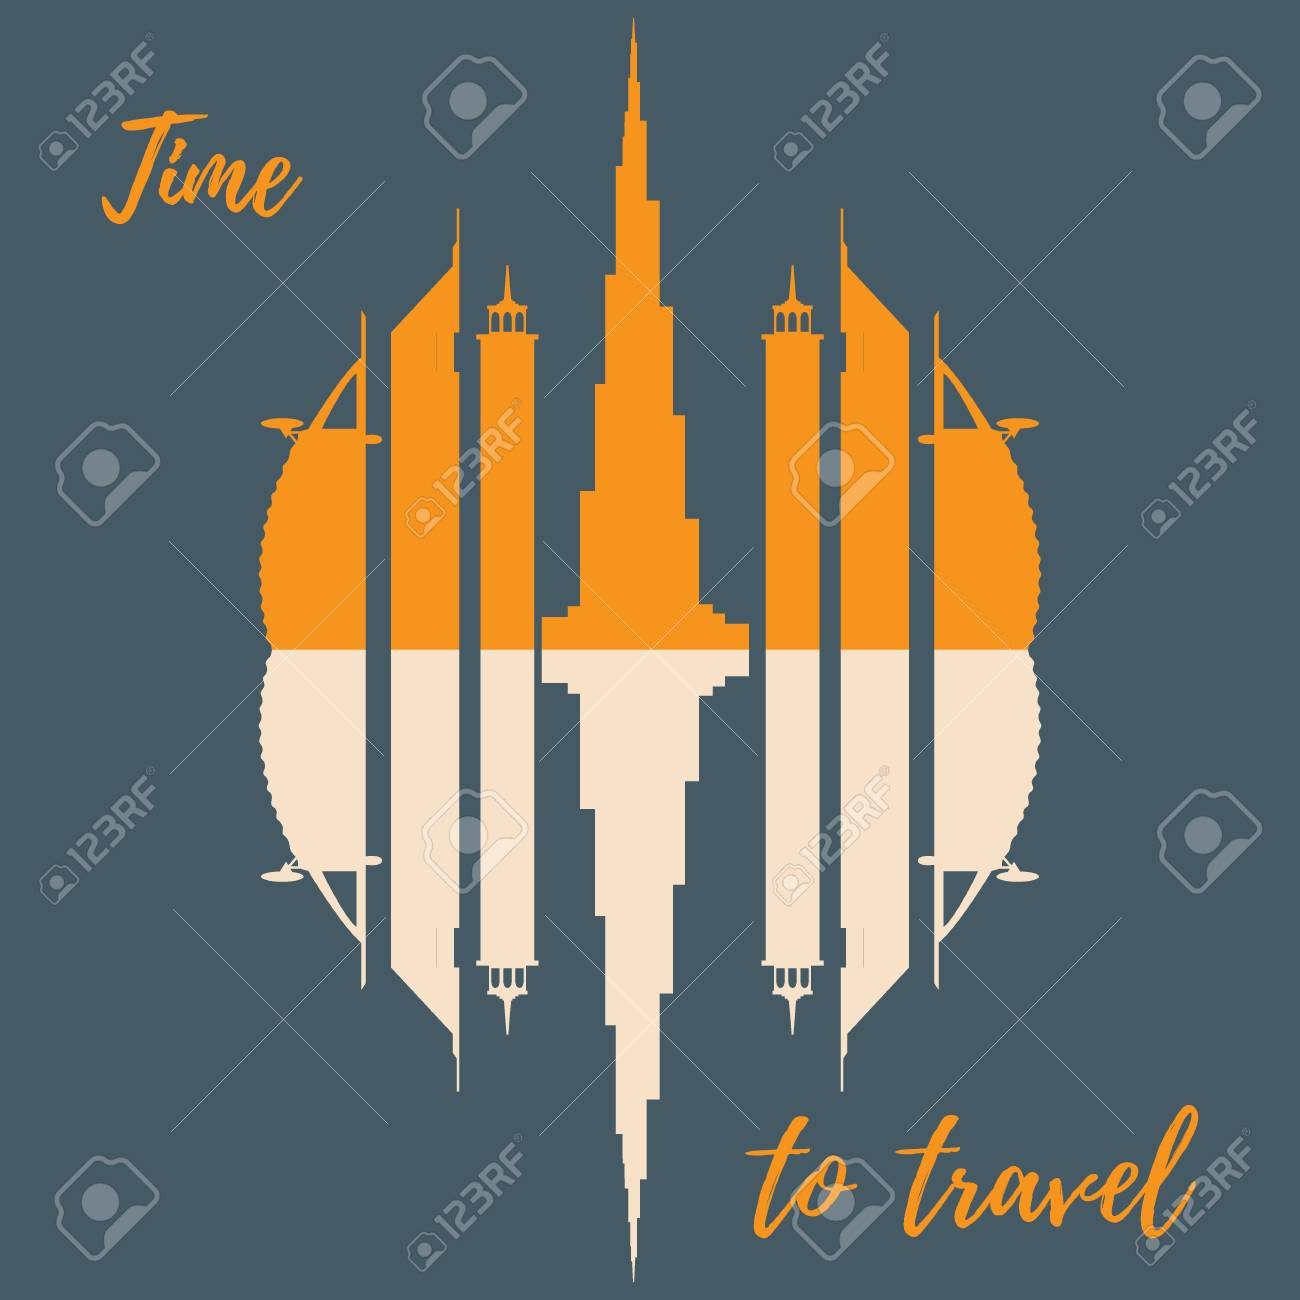 Vector illustration of united arab emirates skyscrapers silhouette vector illustration of united arab emirates skyscrapers silhouette dubai buildings design for banner biocorpaavc Images